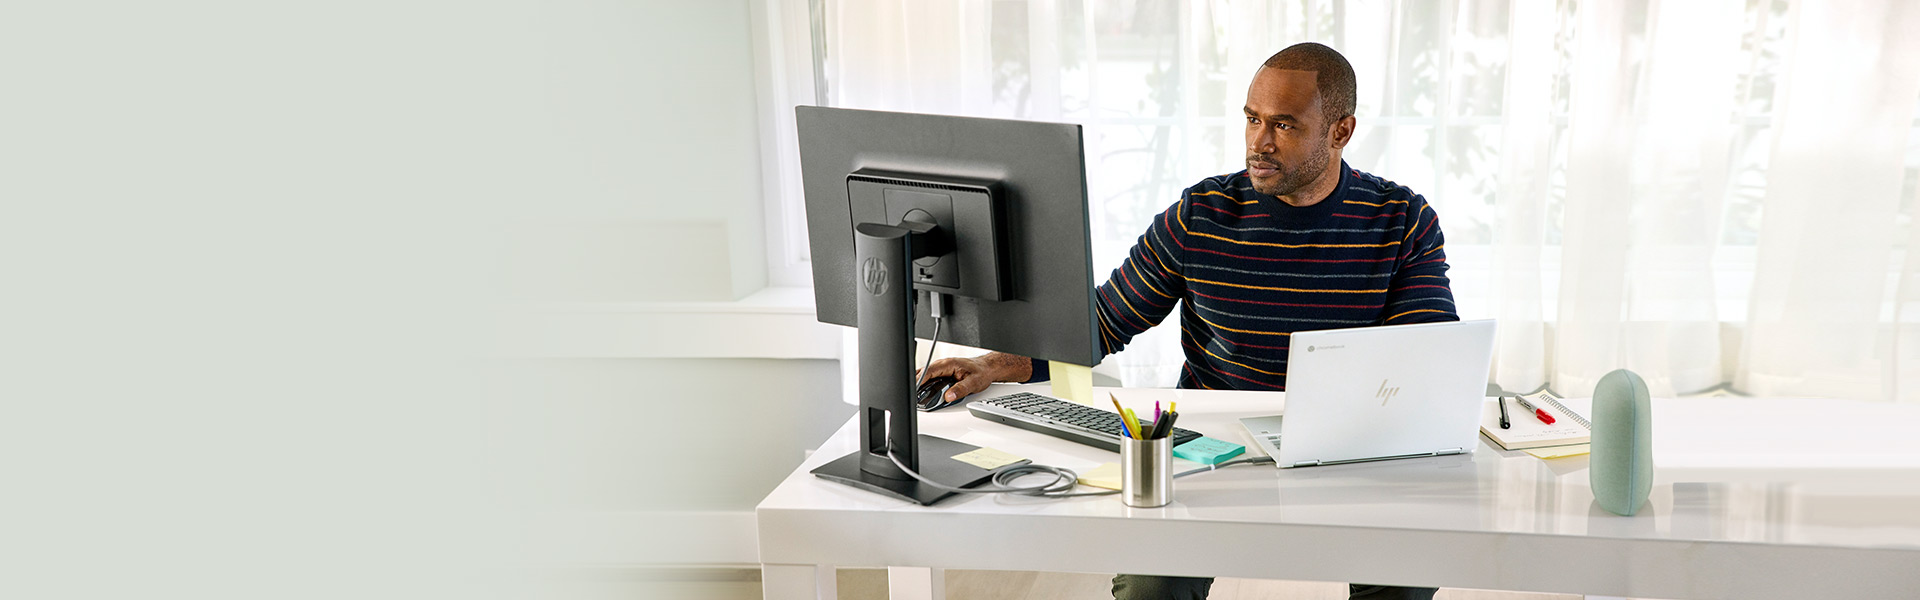 Man working on HP Chromebook at desk